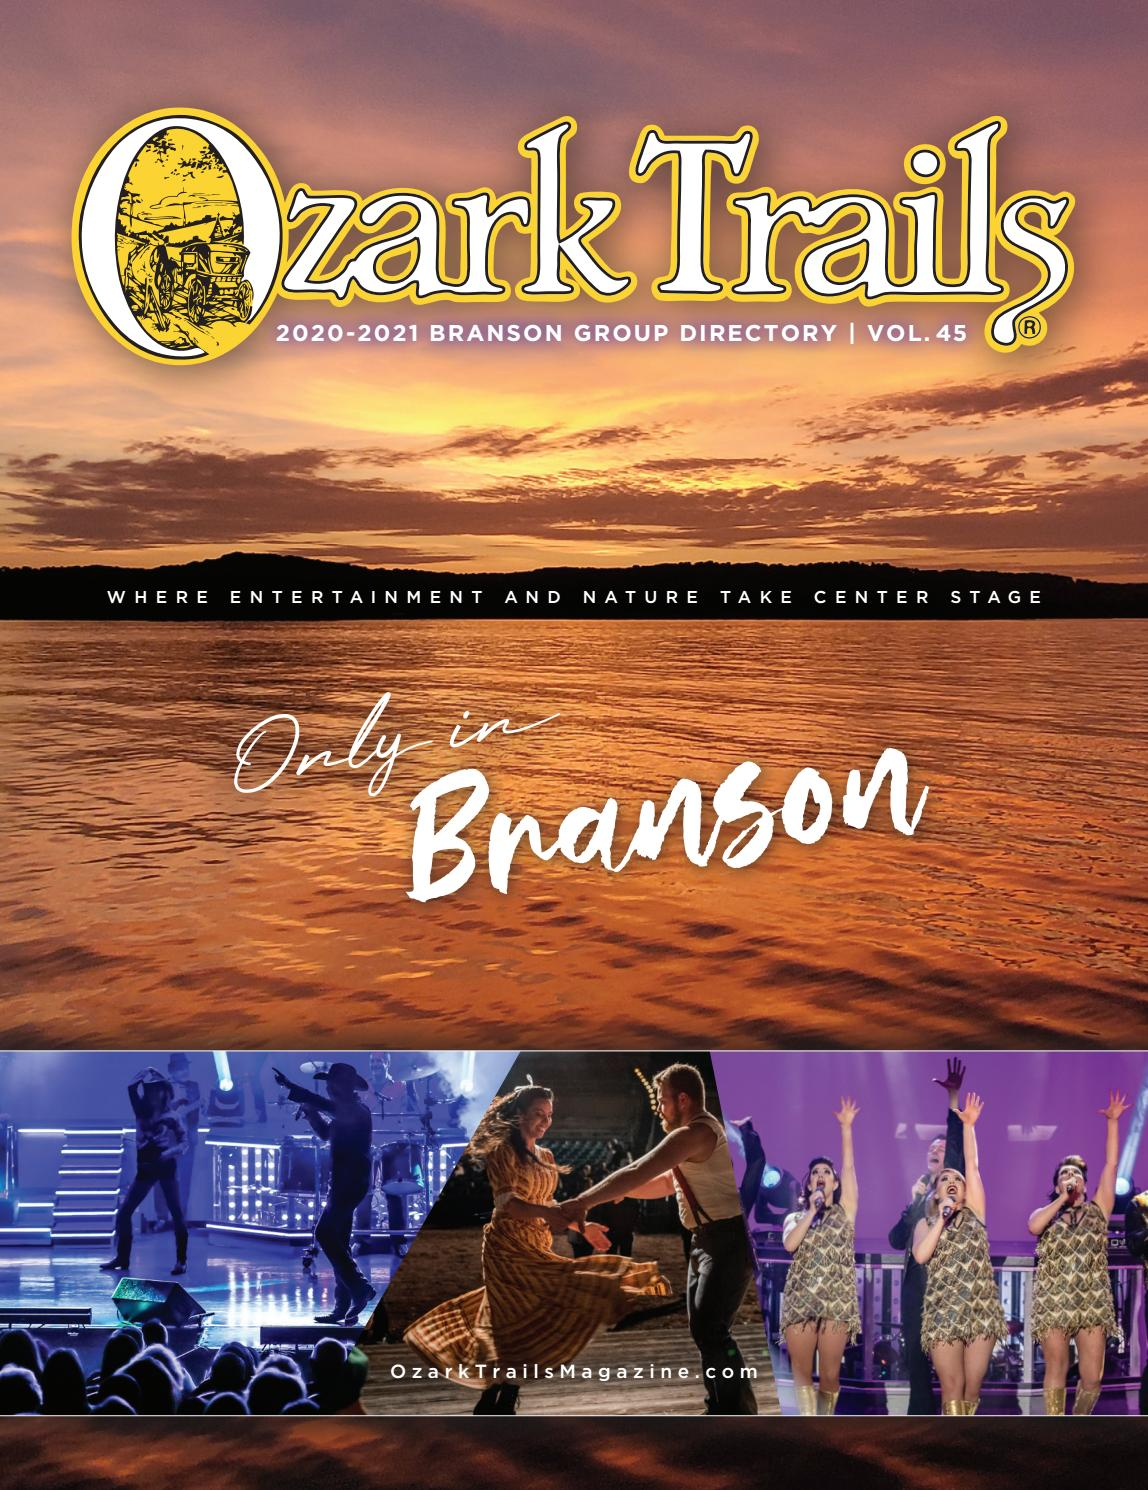 Branson Entertainment Calendar 2021 Ozark Trails | 2020 2021 Branson Group Directory | Volume 45 by